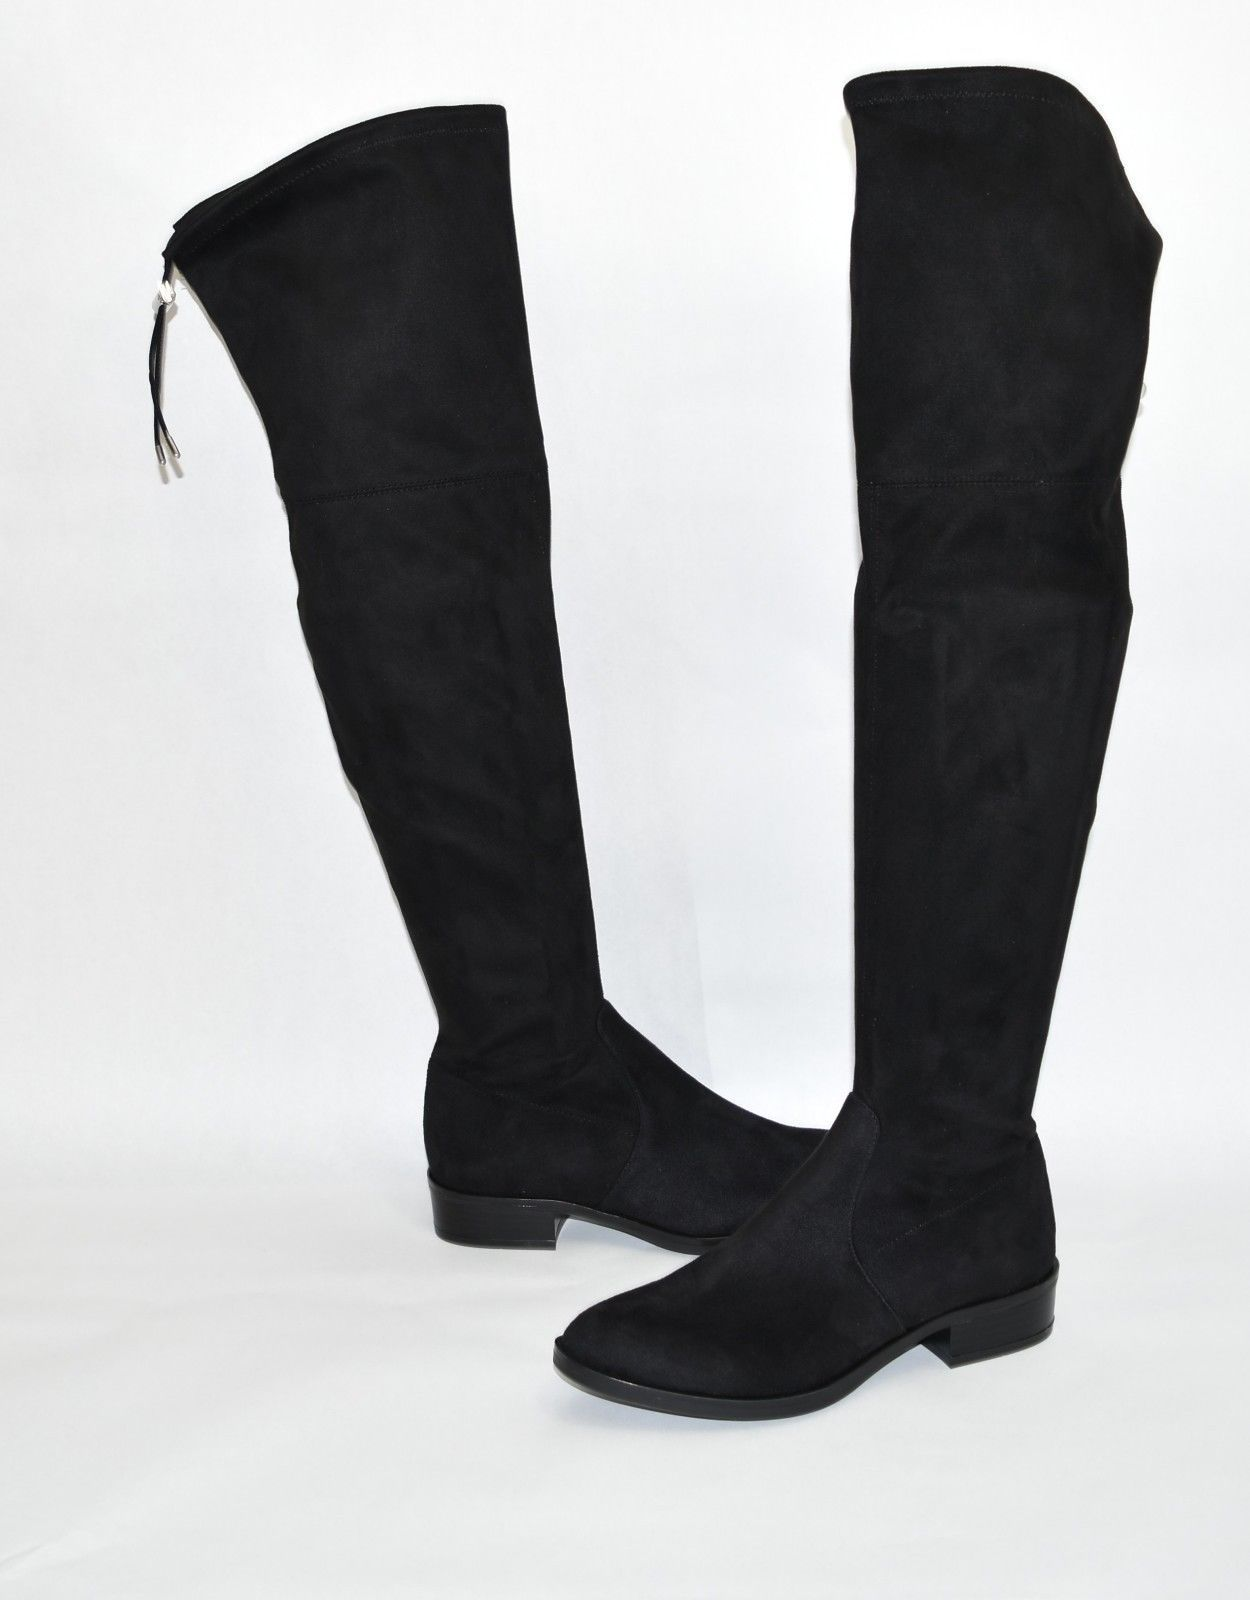 1cc076af2bf4 Sam Edelman Paloma Over the Knee Boot Black Suede Size 9.5 2C ❤  edelman   paloma  over  knee  boot  black  suede  size  souvenirs  summerwear   sensuelle ...